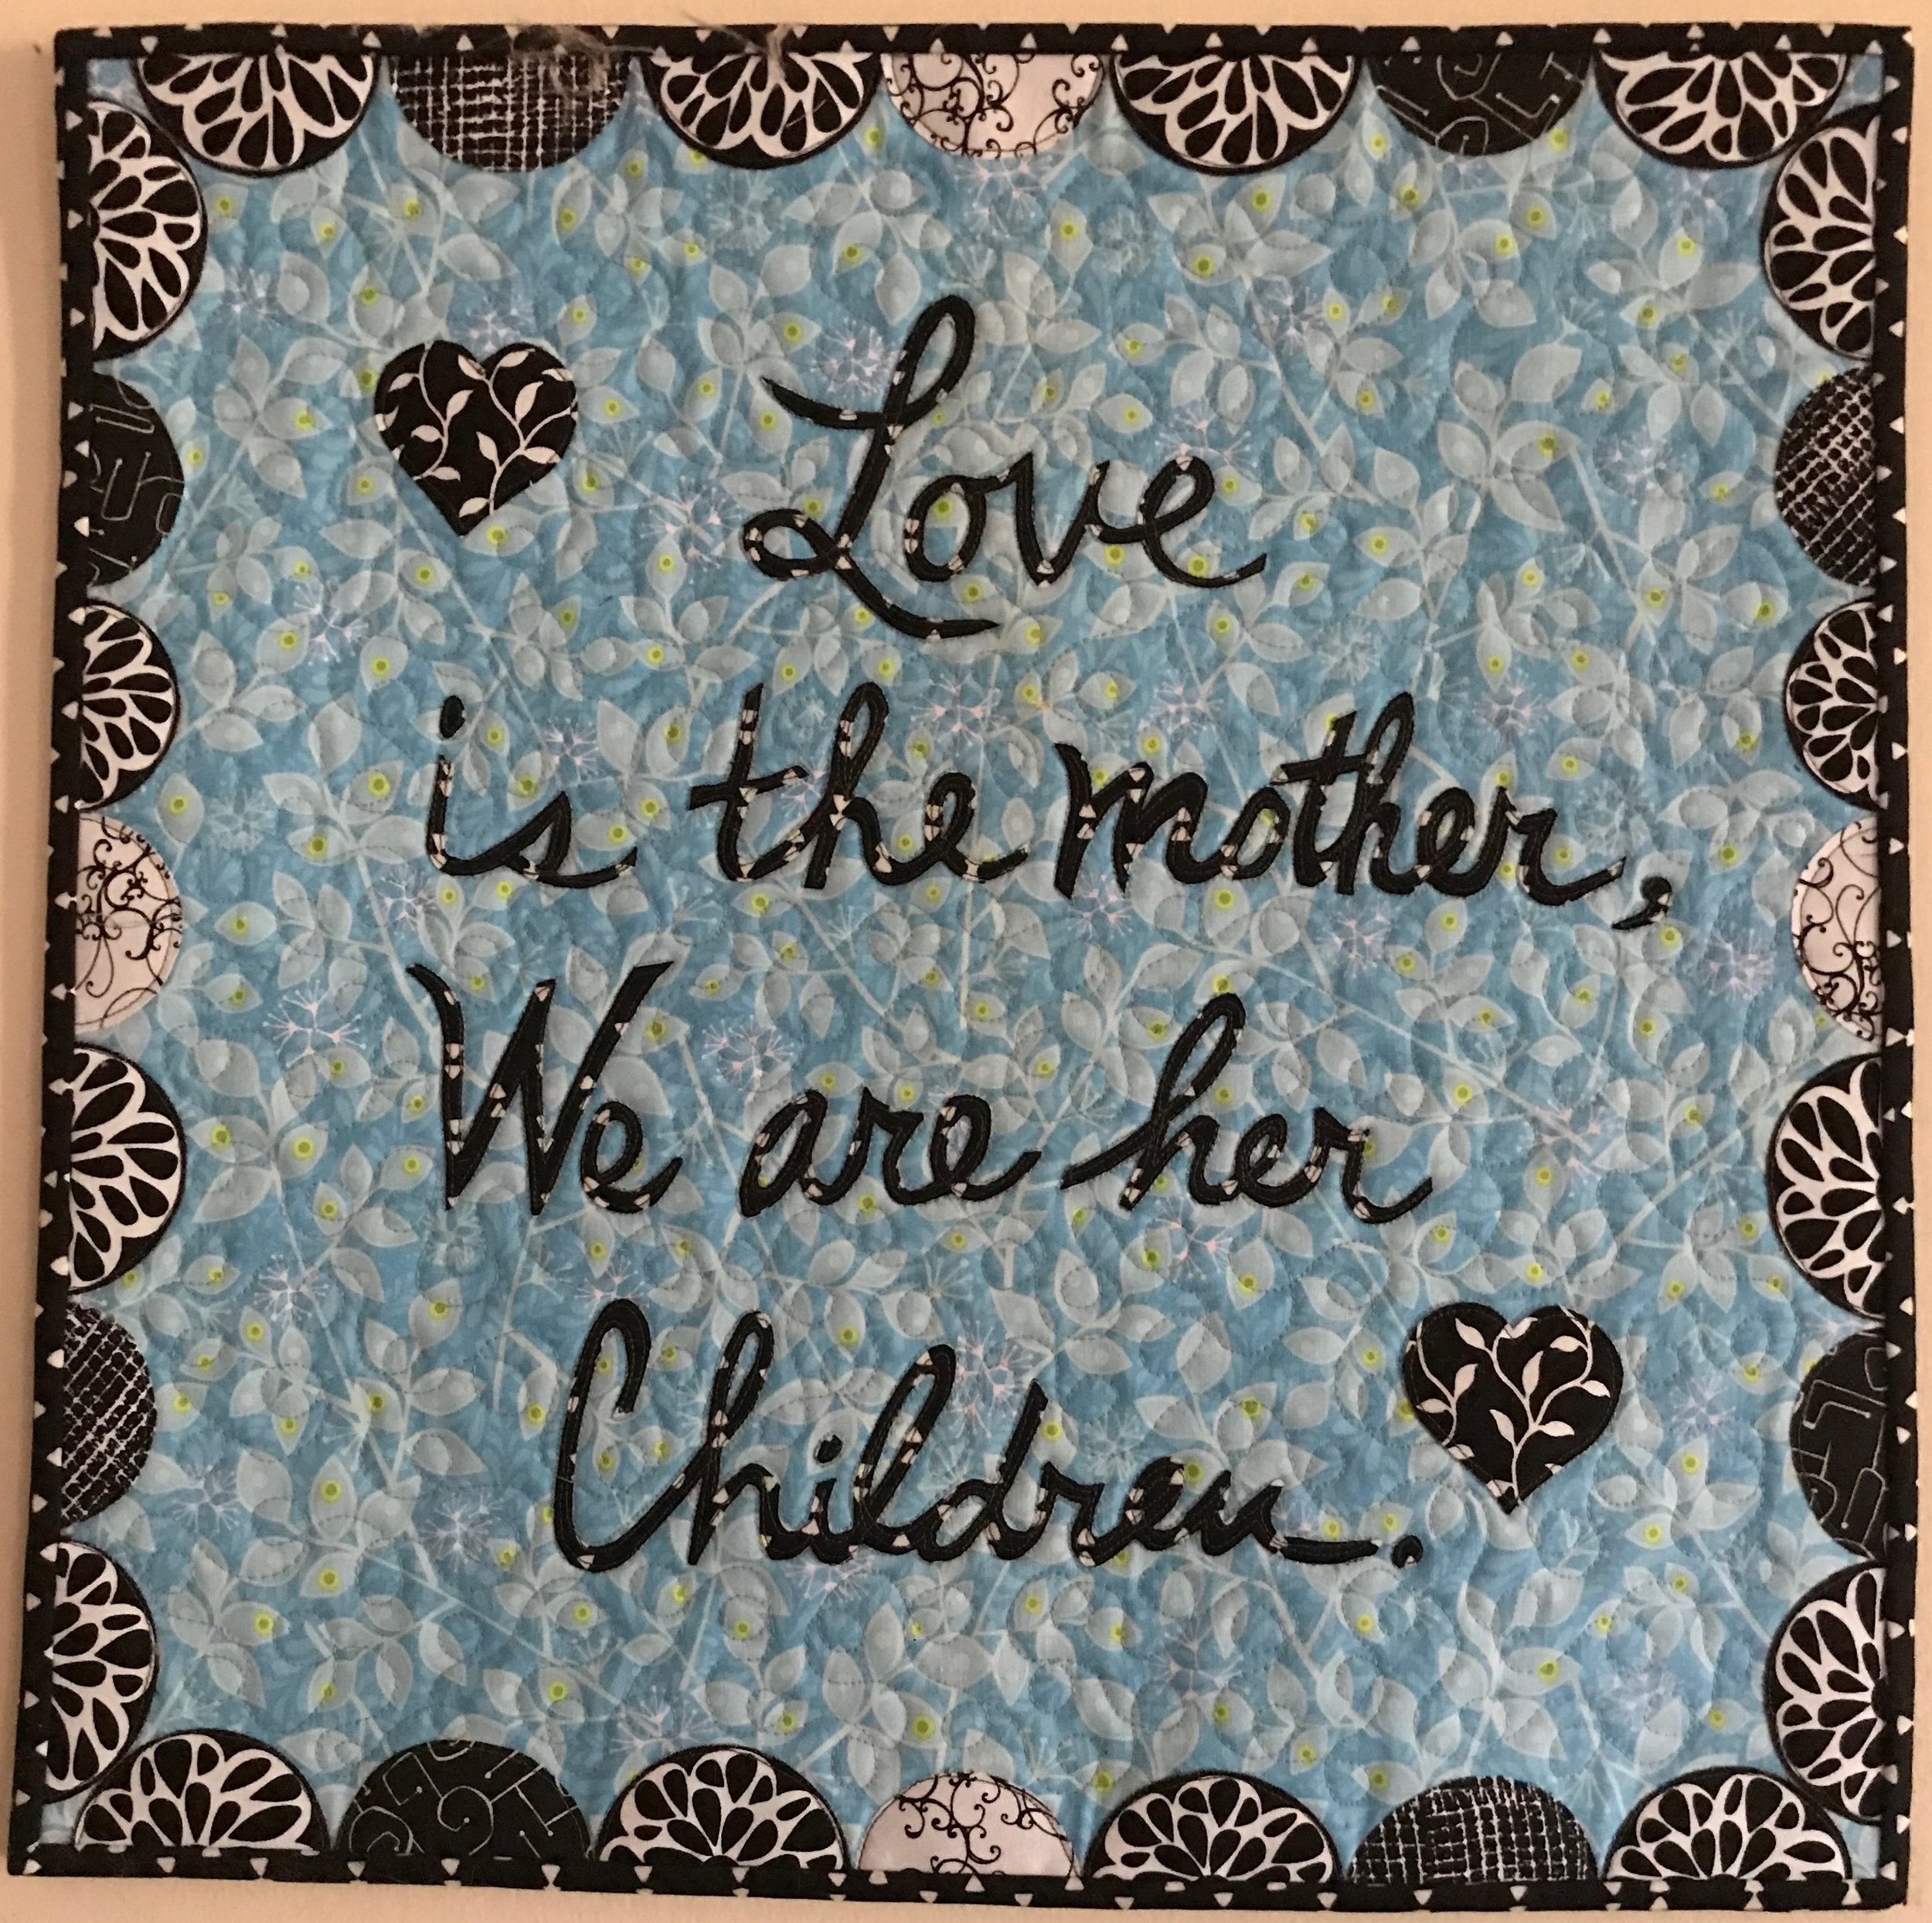 """Love is the Mother, Appliquéd, Custom Machine Quilted, donated by Pam Etheridge, 18 x 18"""""""